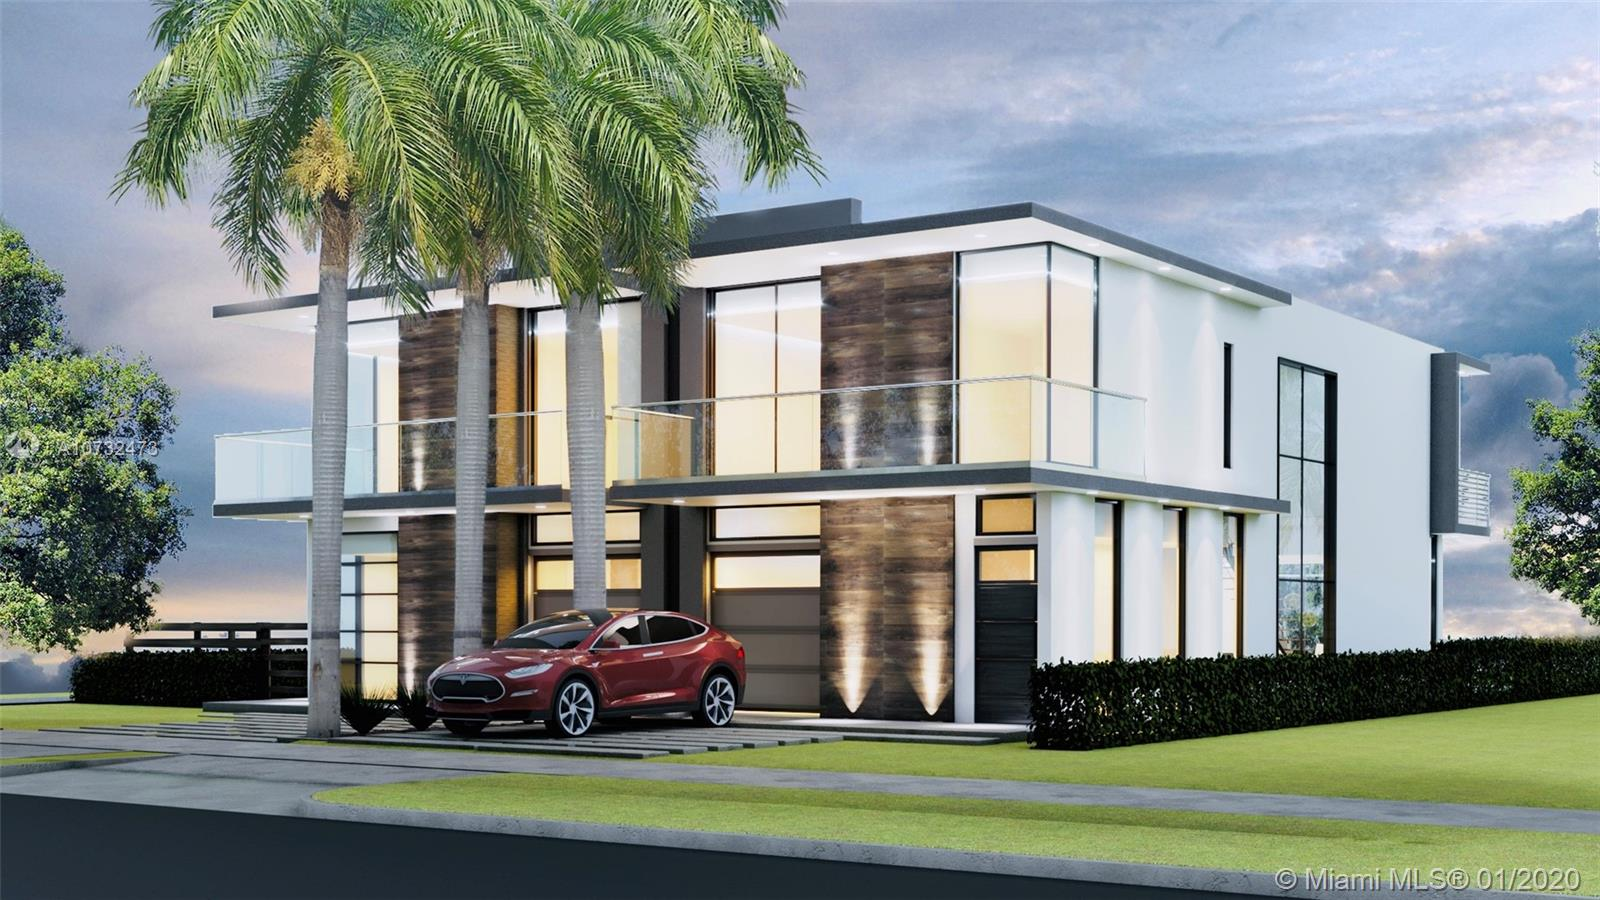 Introducing The Estates at Coral Ridge (2514 A) where iconic contemporary architecture meets a luxurious lifestyle. Designed by a world-famous and awarded architect & designer specifically with exquisite interior design, style, and modern elegance. A brand new and now already under construction boutique attached family homes within a walking distance from Fort Lauderdale Beach. The Estates at Coral Ridge exclusively offer 4 luxurious two-story modern attached family homes with private swimming pools to each resident, 10-foot ceilings and floor to ceiling impact glass windows. Other features include state of the art European upscale appliances, glass balcony railings, elegant staircases, open space floor plan, fenced backyard, and optional upgrades. Expected delivery summer of 2020.